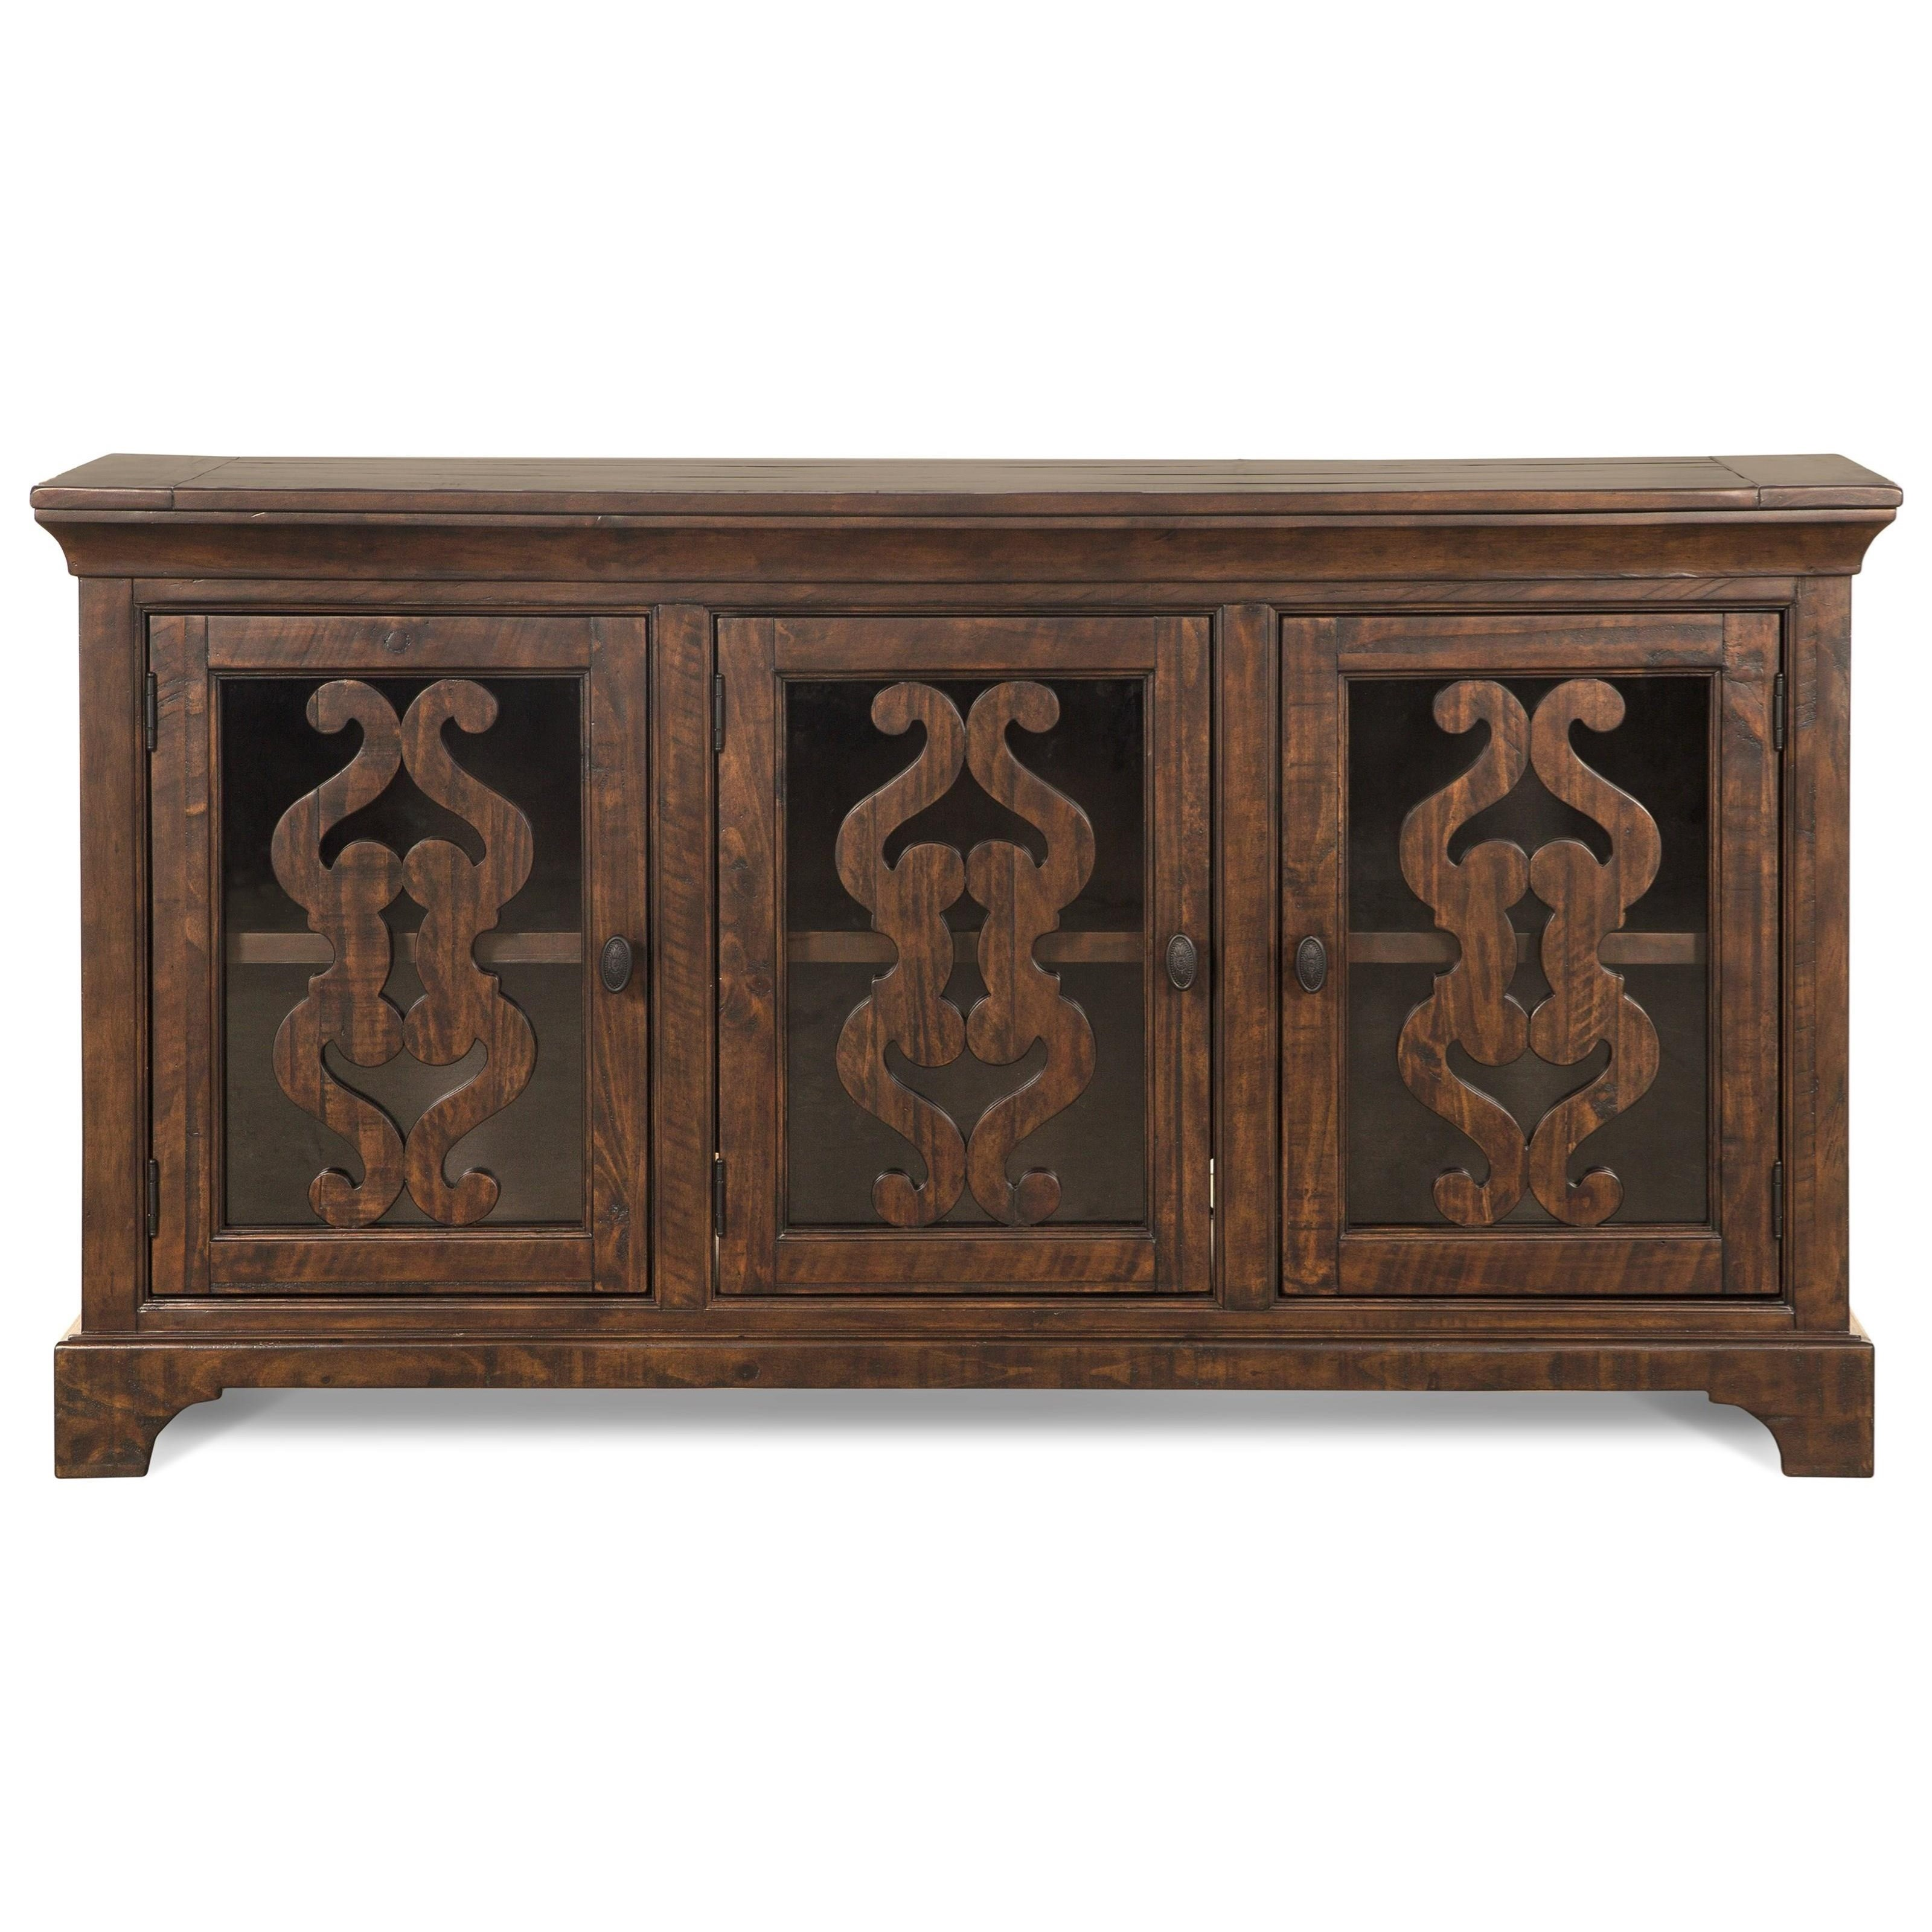 St. Claire Server by Magnussen Home at Upper Room Home Furnishings